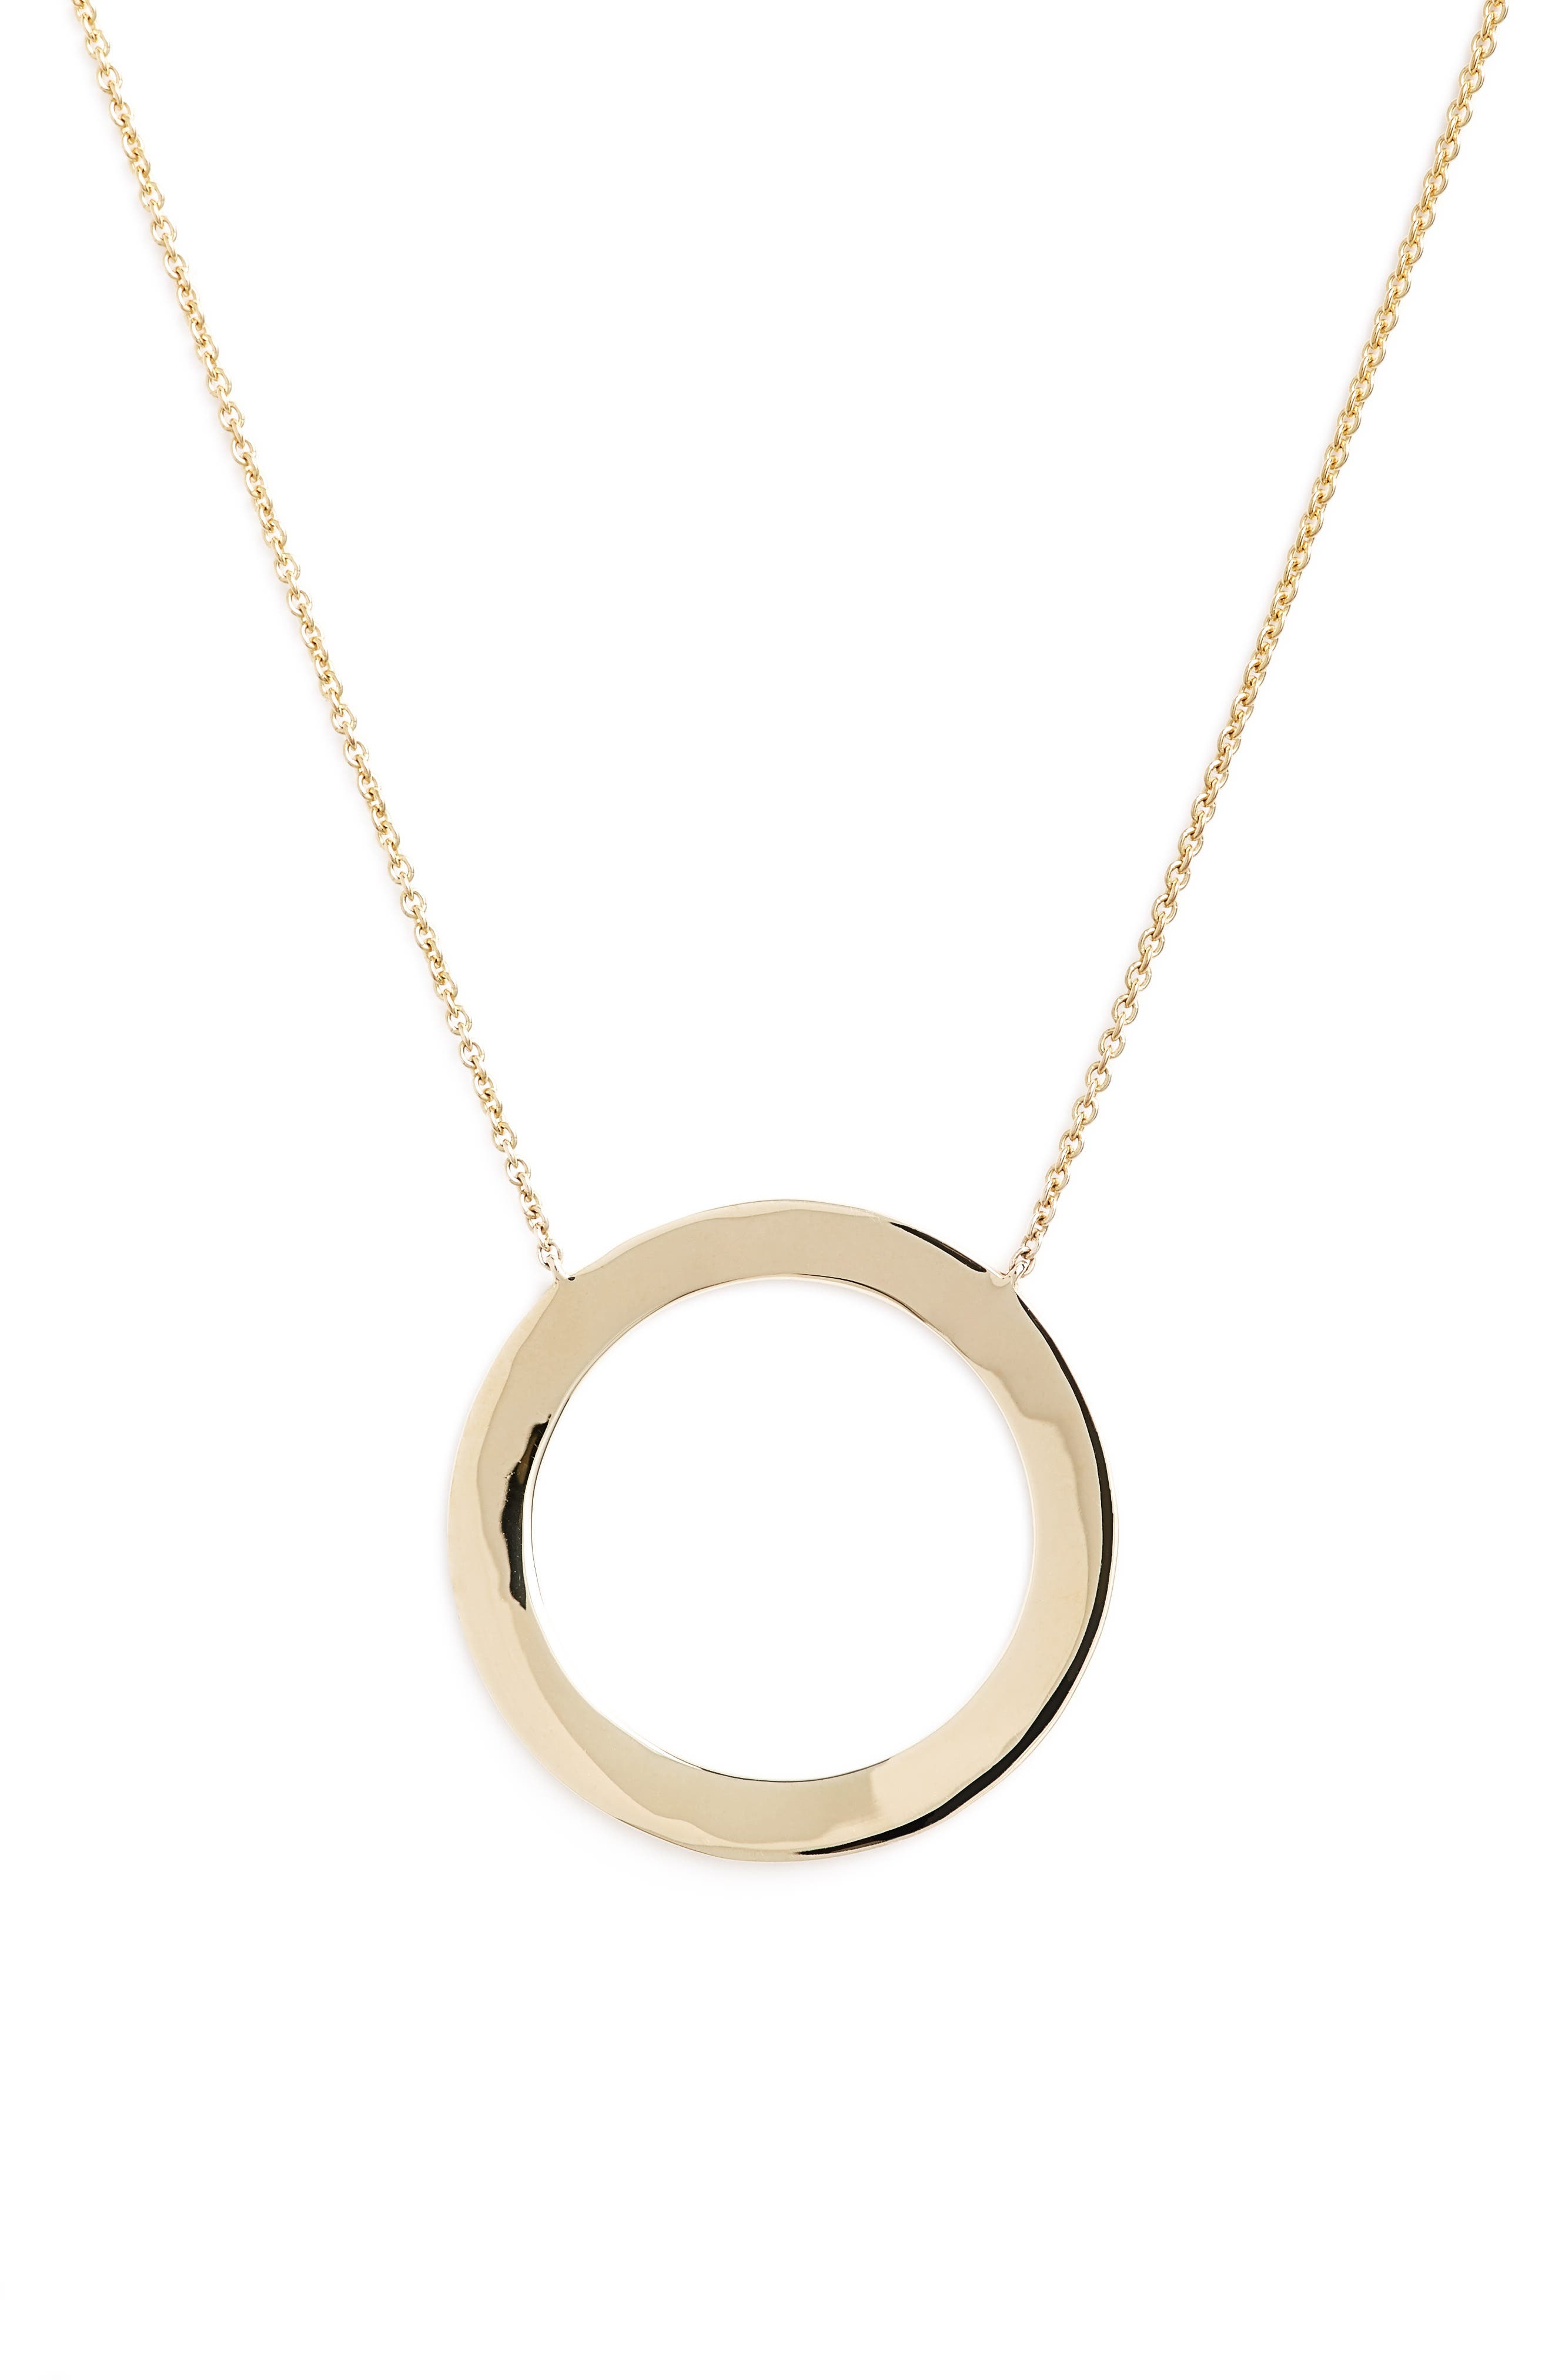 Alternate Image 1 Selected - Bony Levy Geo Circle Pendant Necklace (Nordstrom Exclusive)